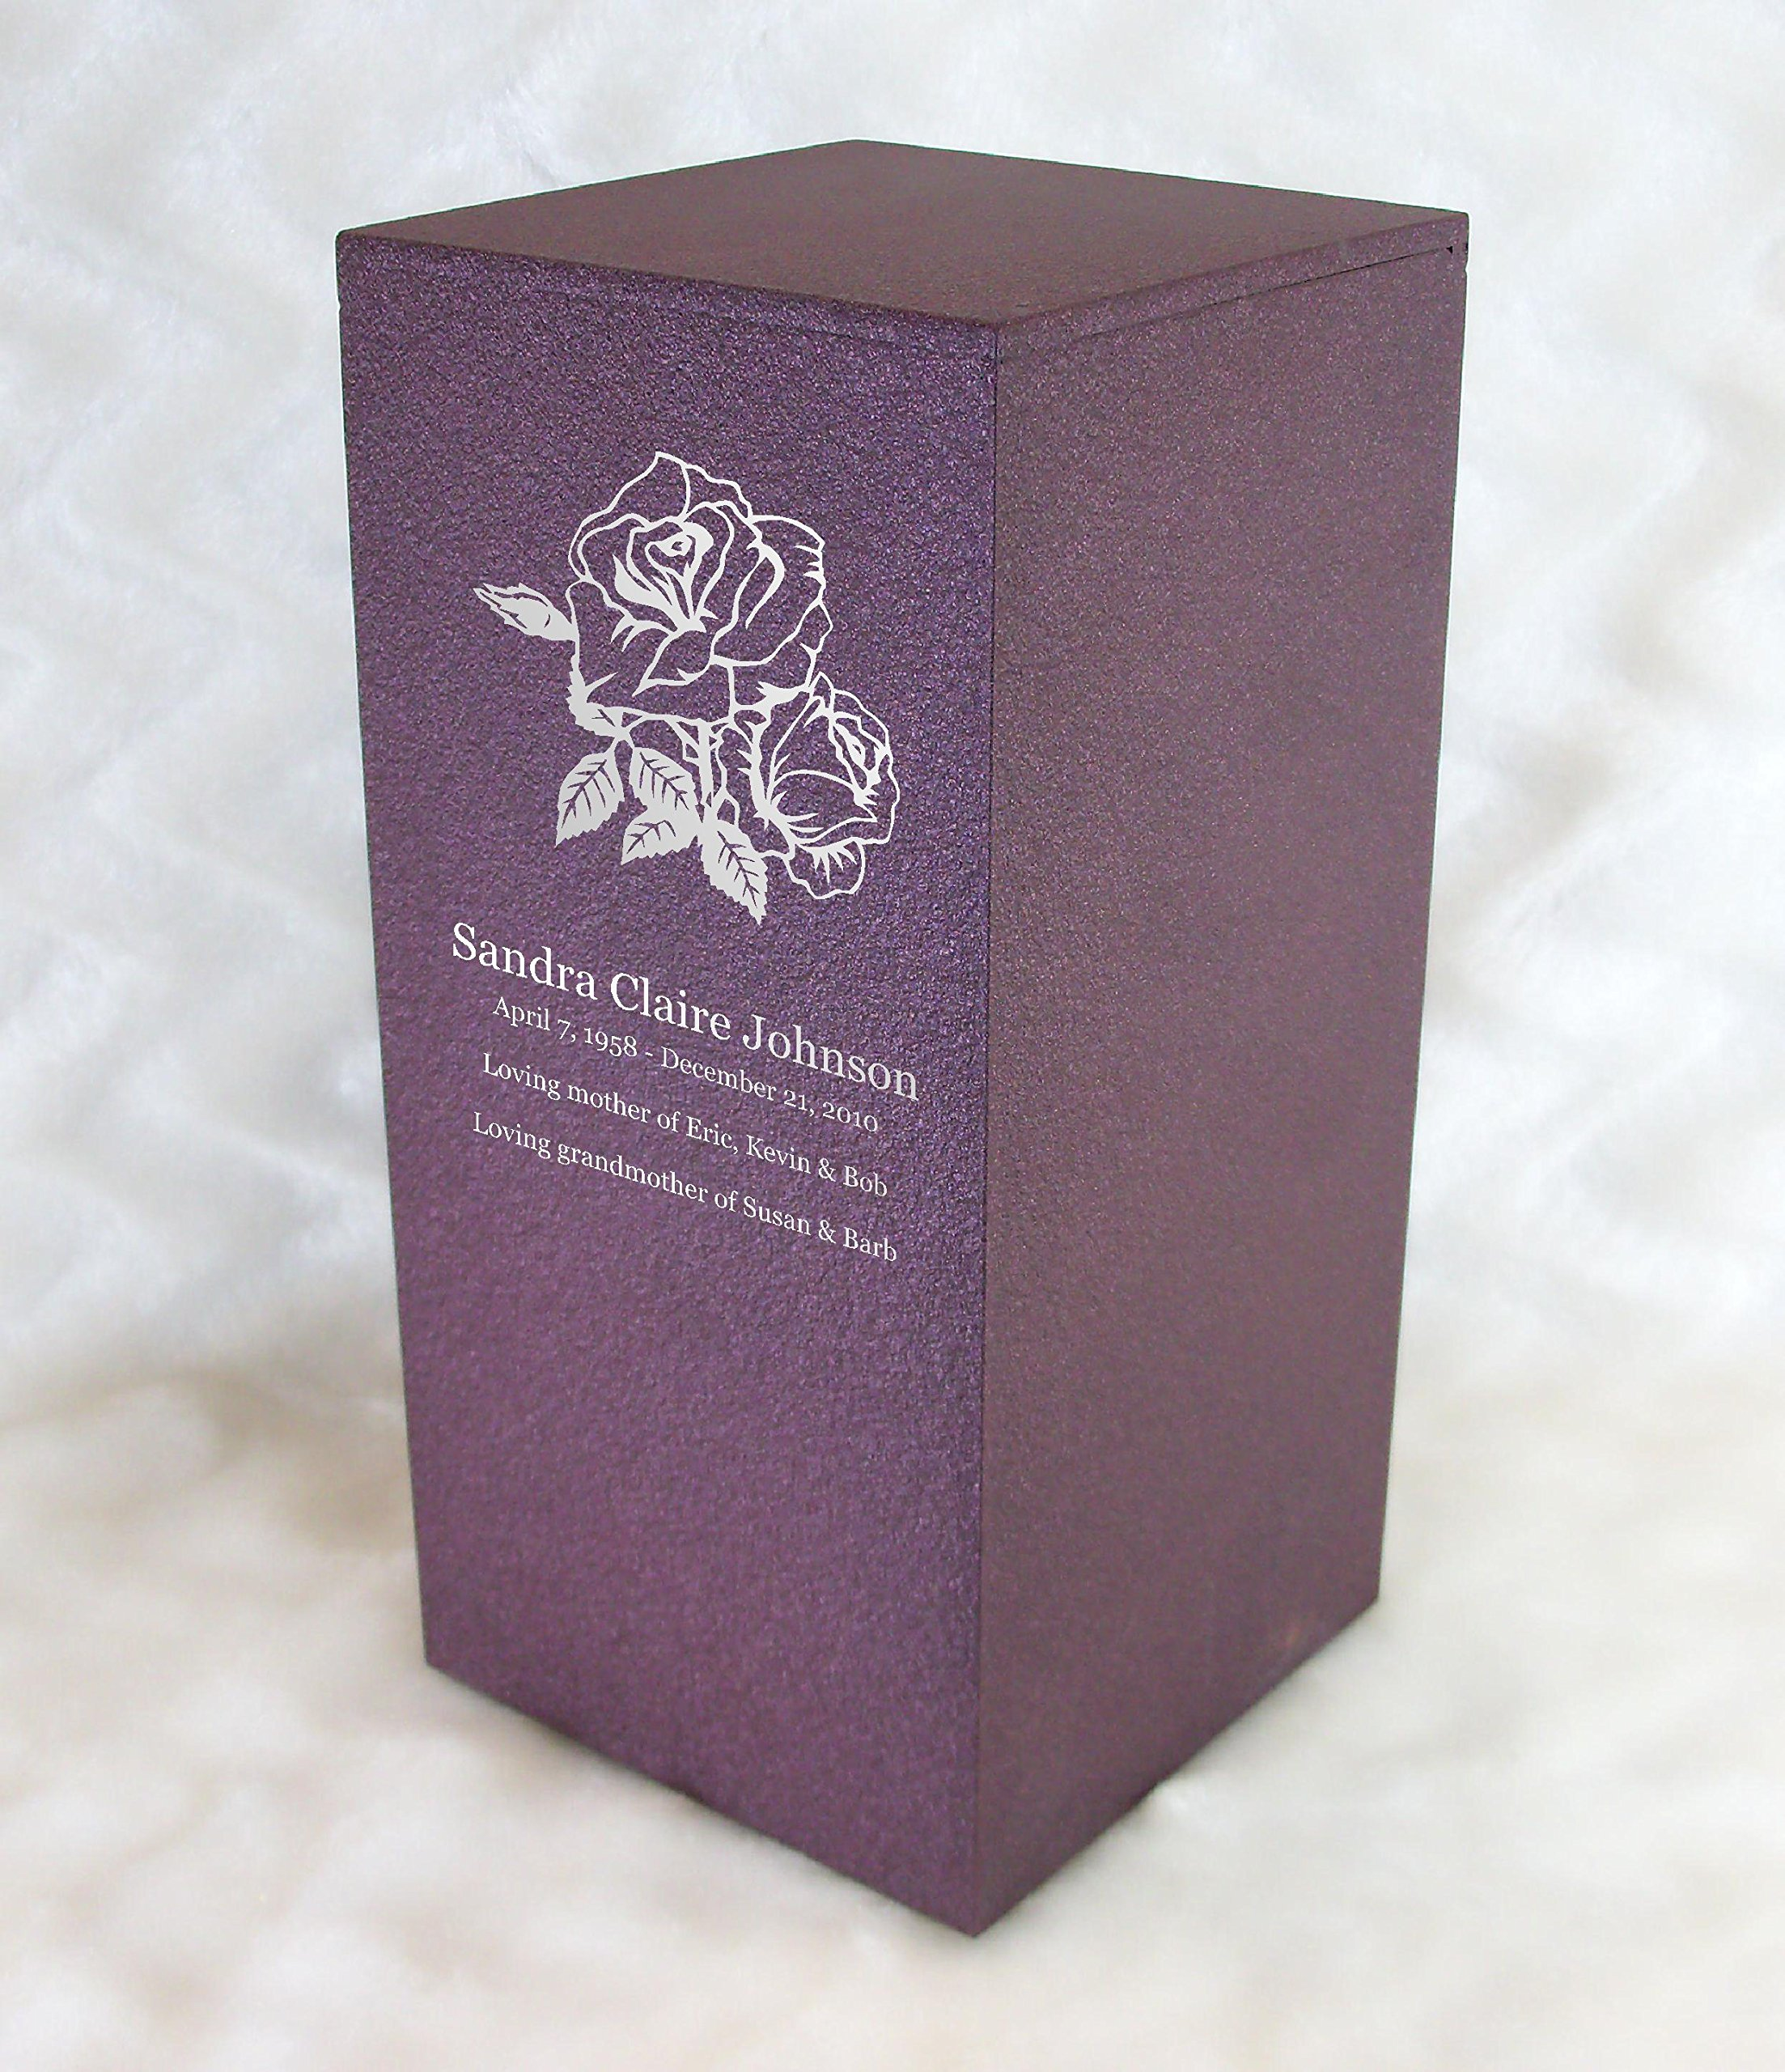 PERSONALIZED Custom Engraved Roses Cremation Urn Vault by Amaranthine Urns, made in America in the USA, Eaton DL (up to 200 lbs living weight) (Rose Wine) by Amaranthine Urn Company